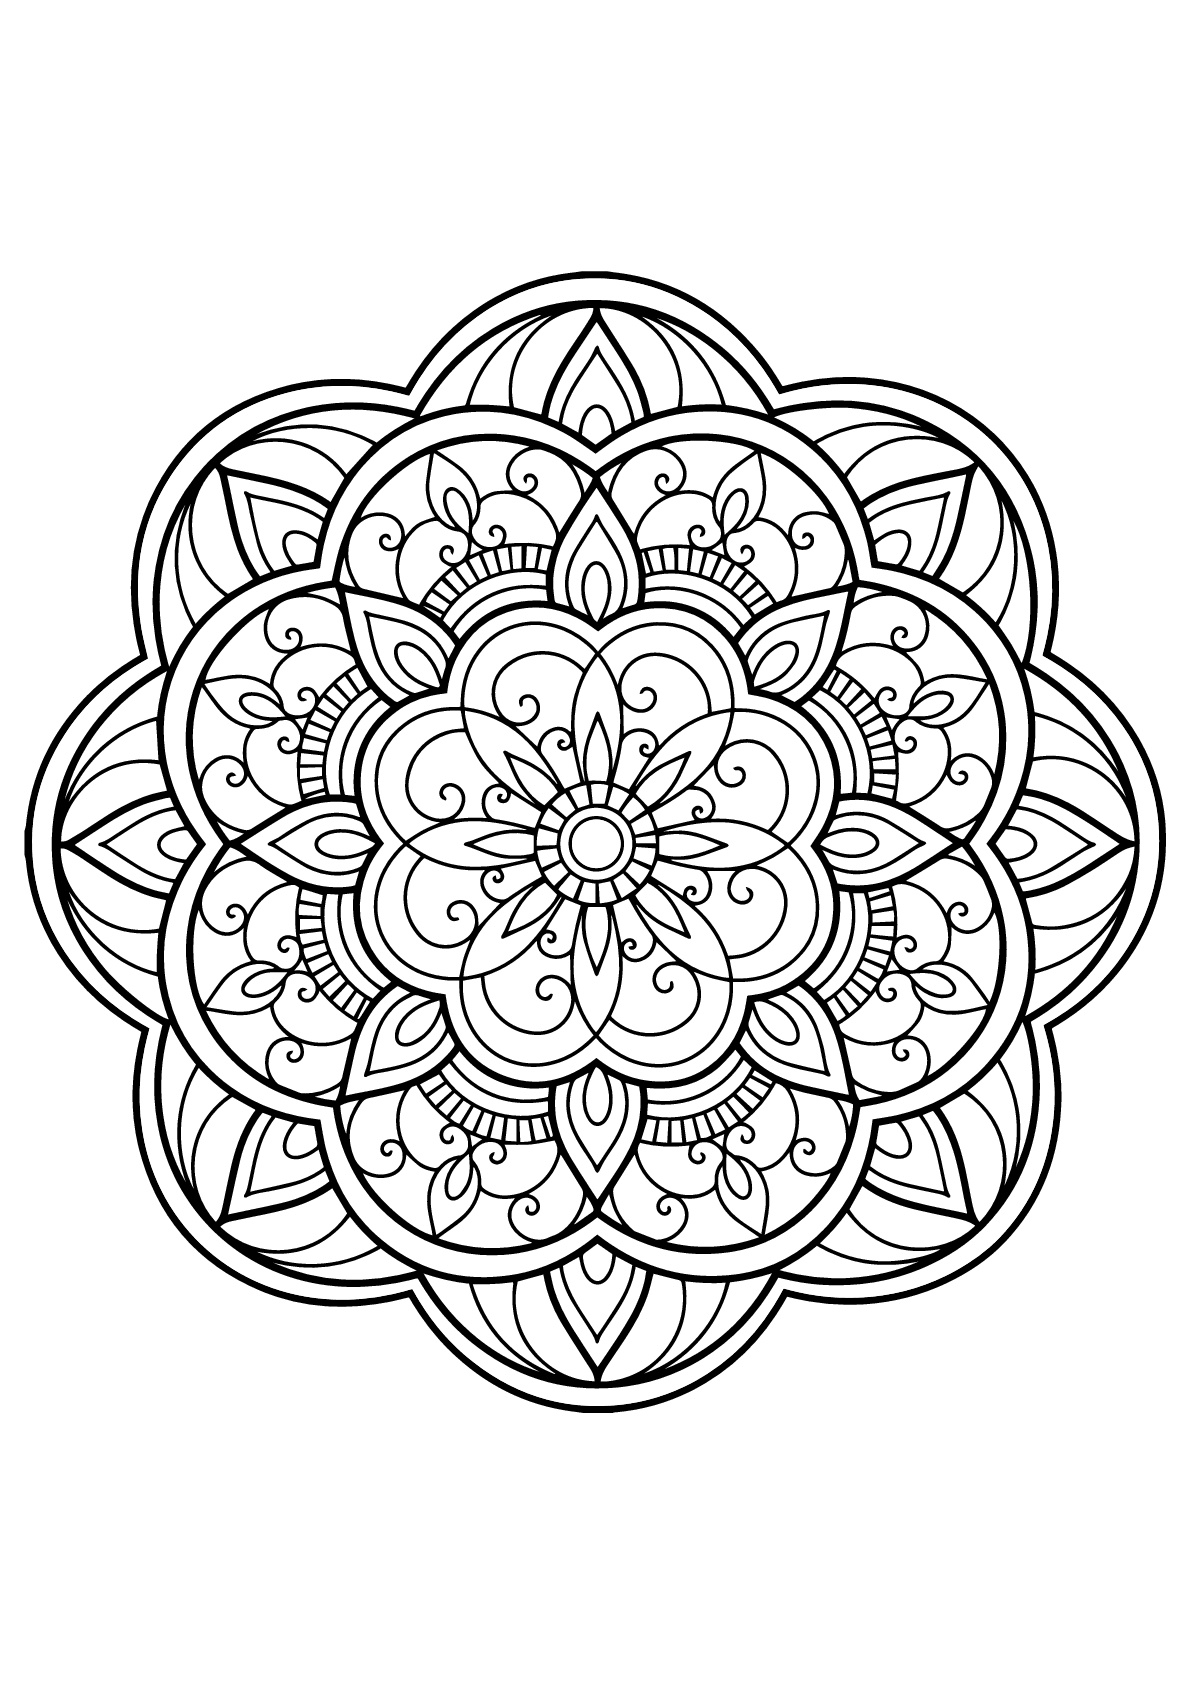 mandala with rounded patterns from free coloring book for adults - Free Coloring Book Pictures